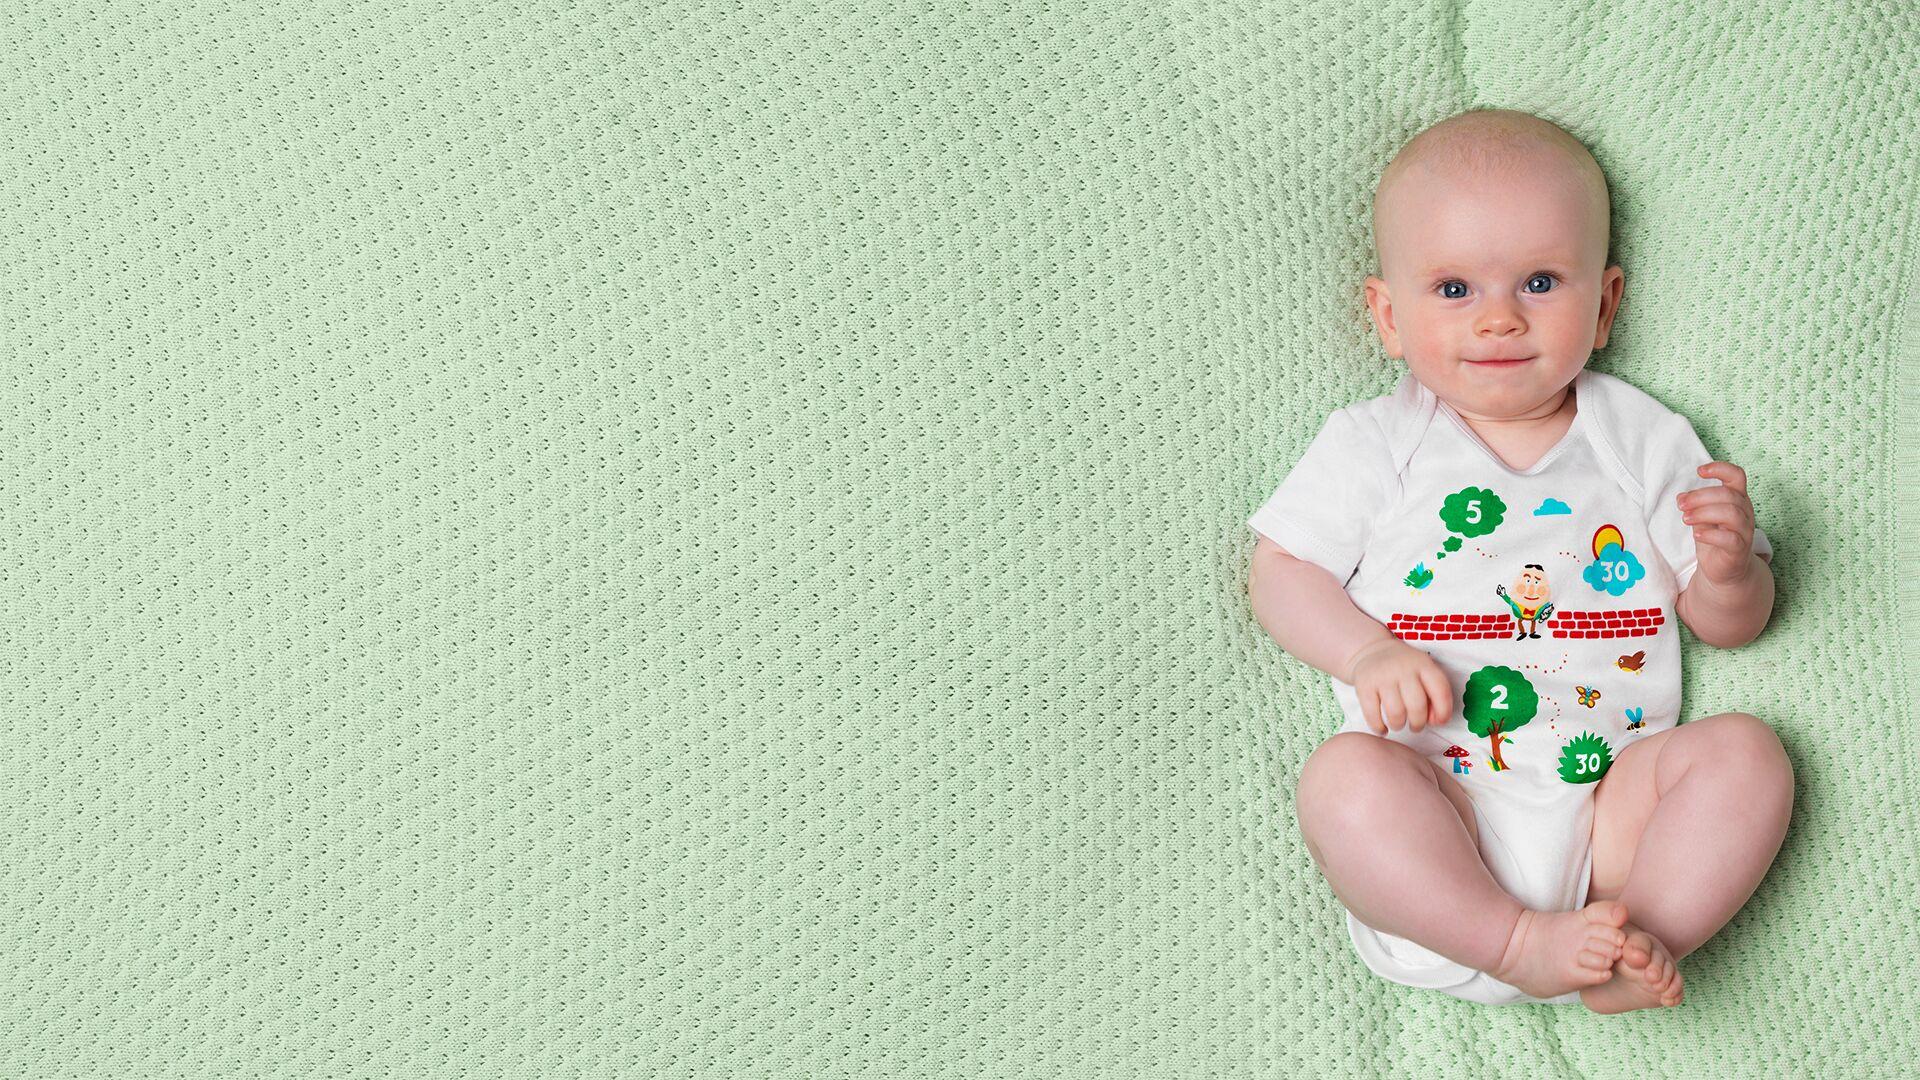 Could a babygrow help save your child's life? New St John Ambulance campaign